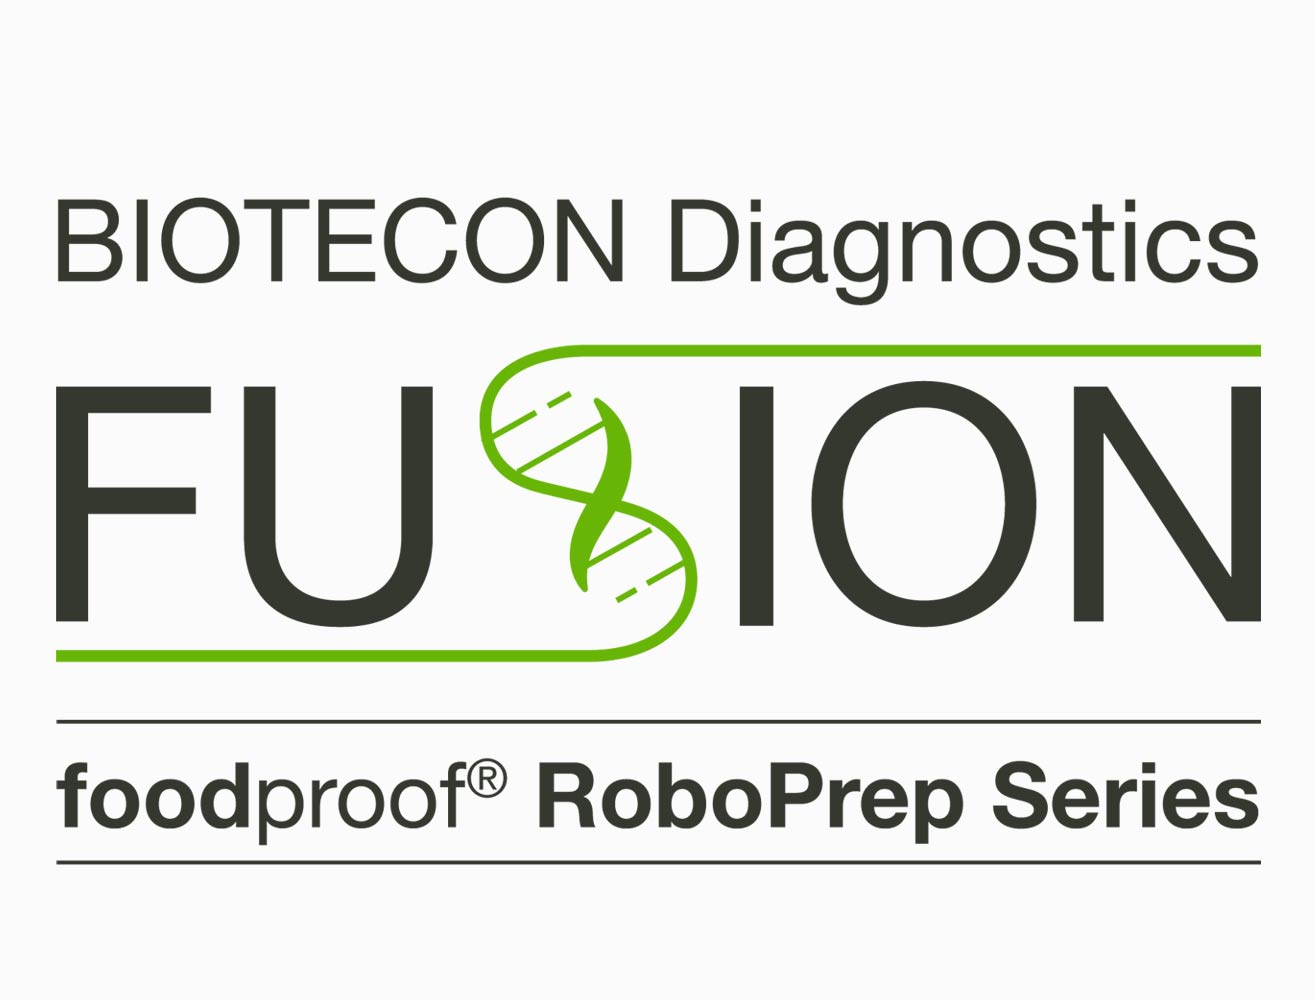 foodproof RoboPrep Fusion